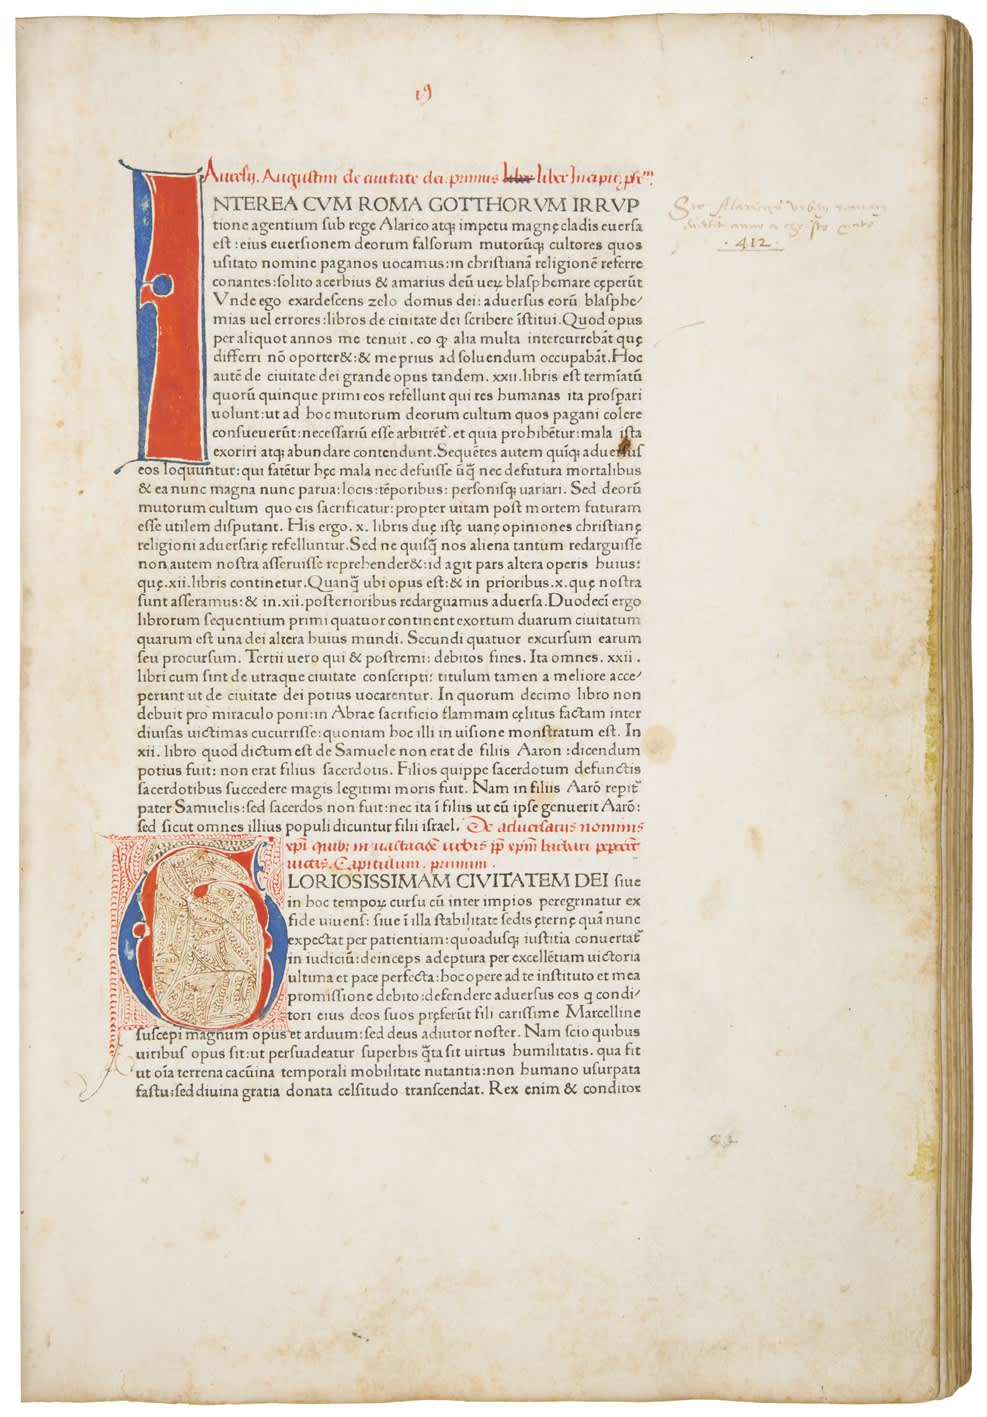 Aurelius Augustinus, De civitate dei. Venice: Johannes and Vindelinus de Spira, 1470. Third or fourth edition of Augustine's most important work, the first printed in Venice.